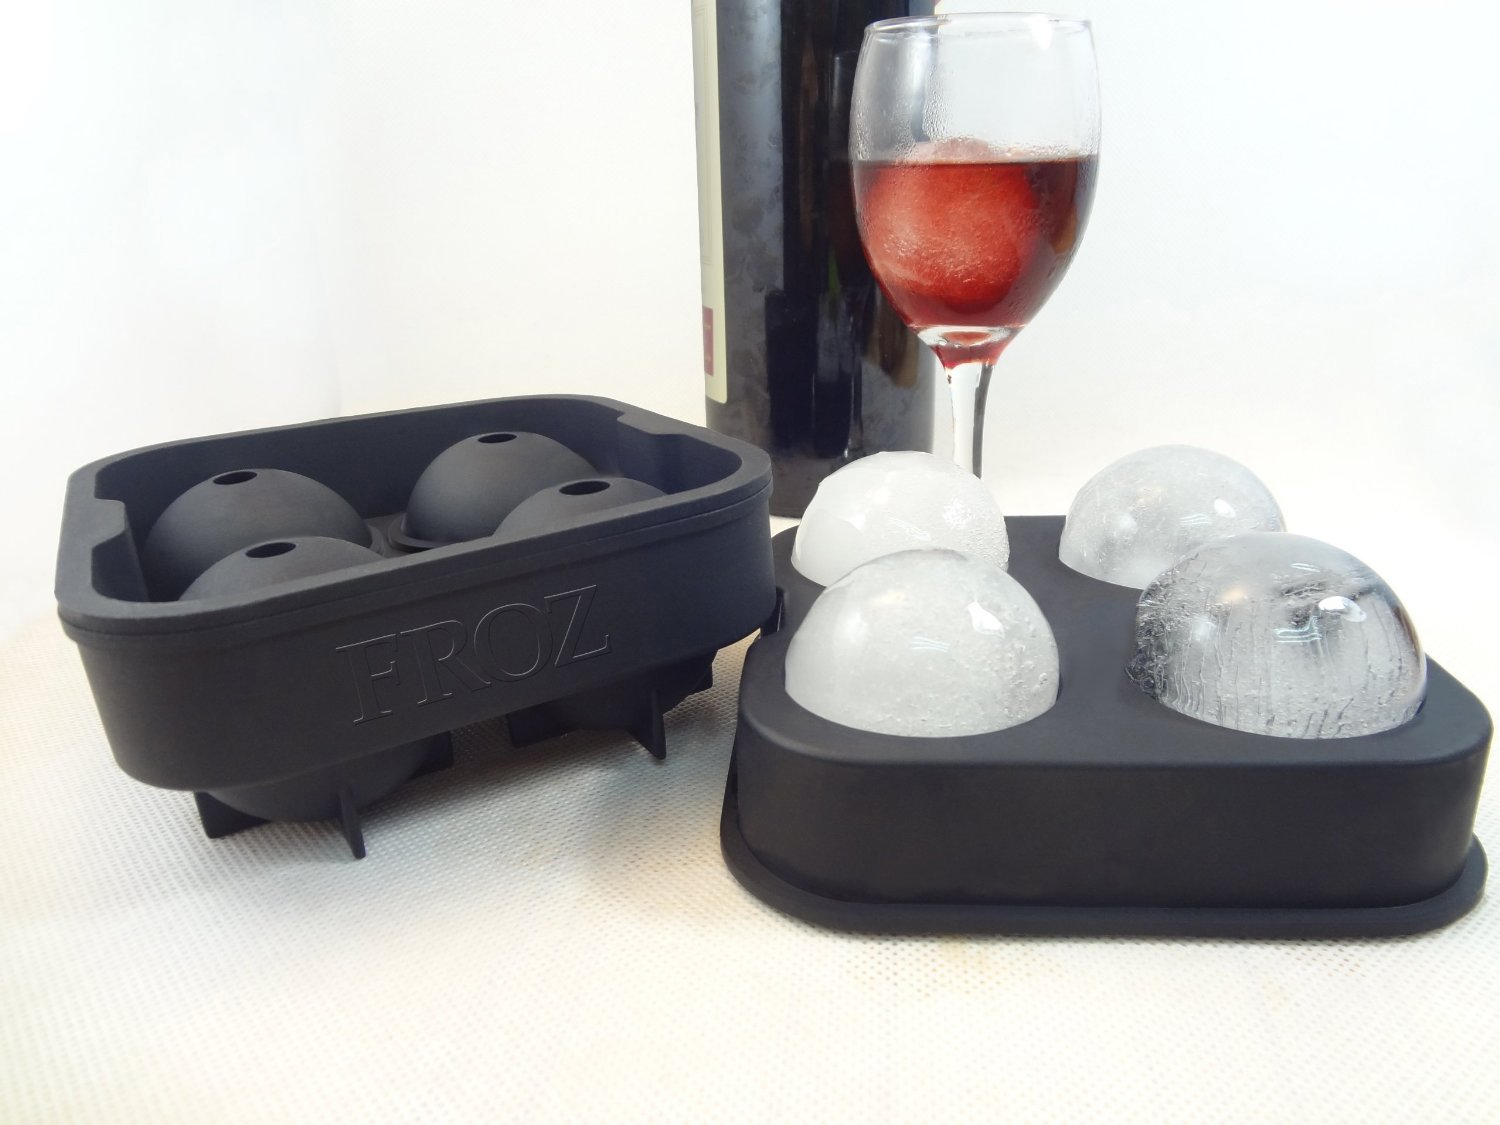 Froz Ice Ball Maker – Novelty Food-Grade Silicone Ice Mold Tray With 4 X 4.5cm Ball Capacity